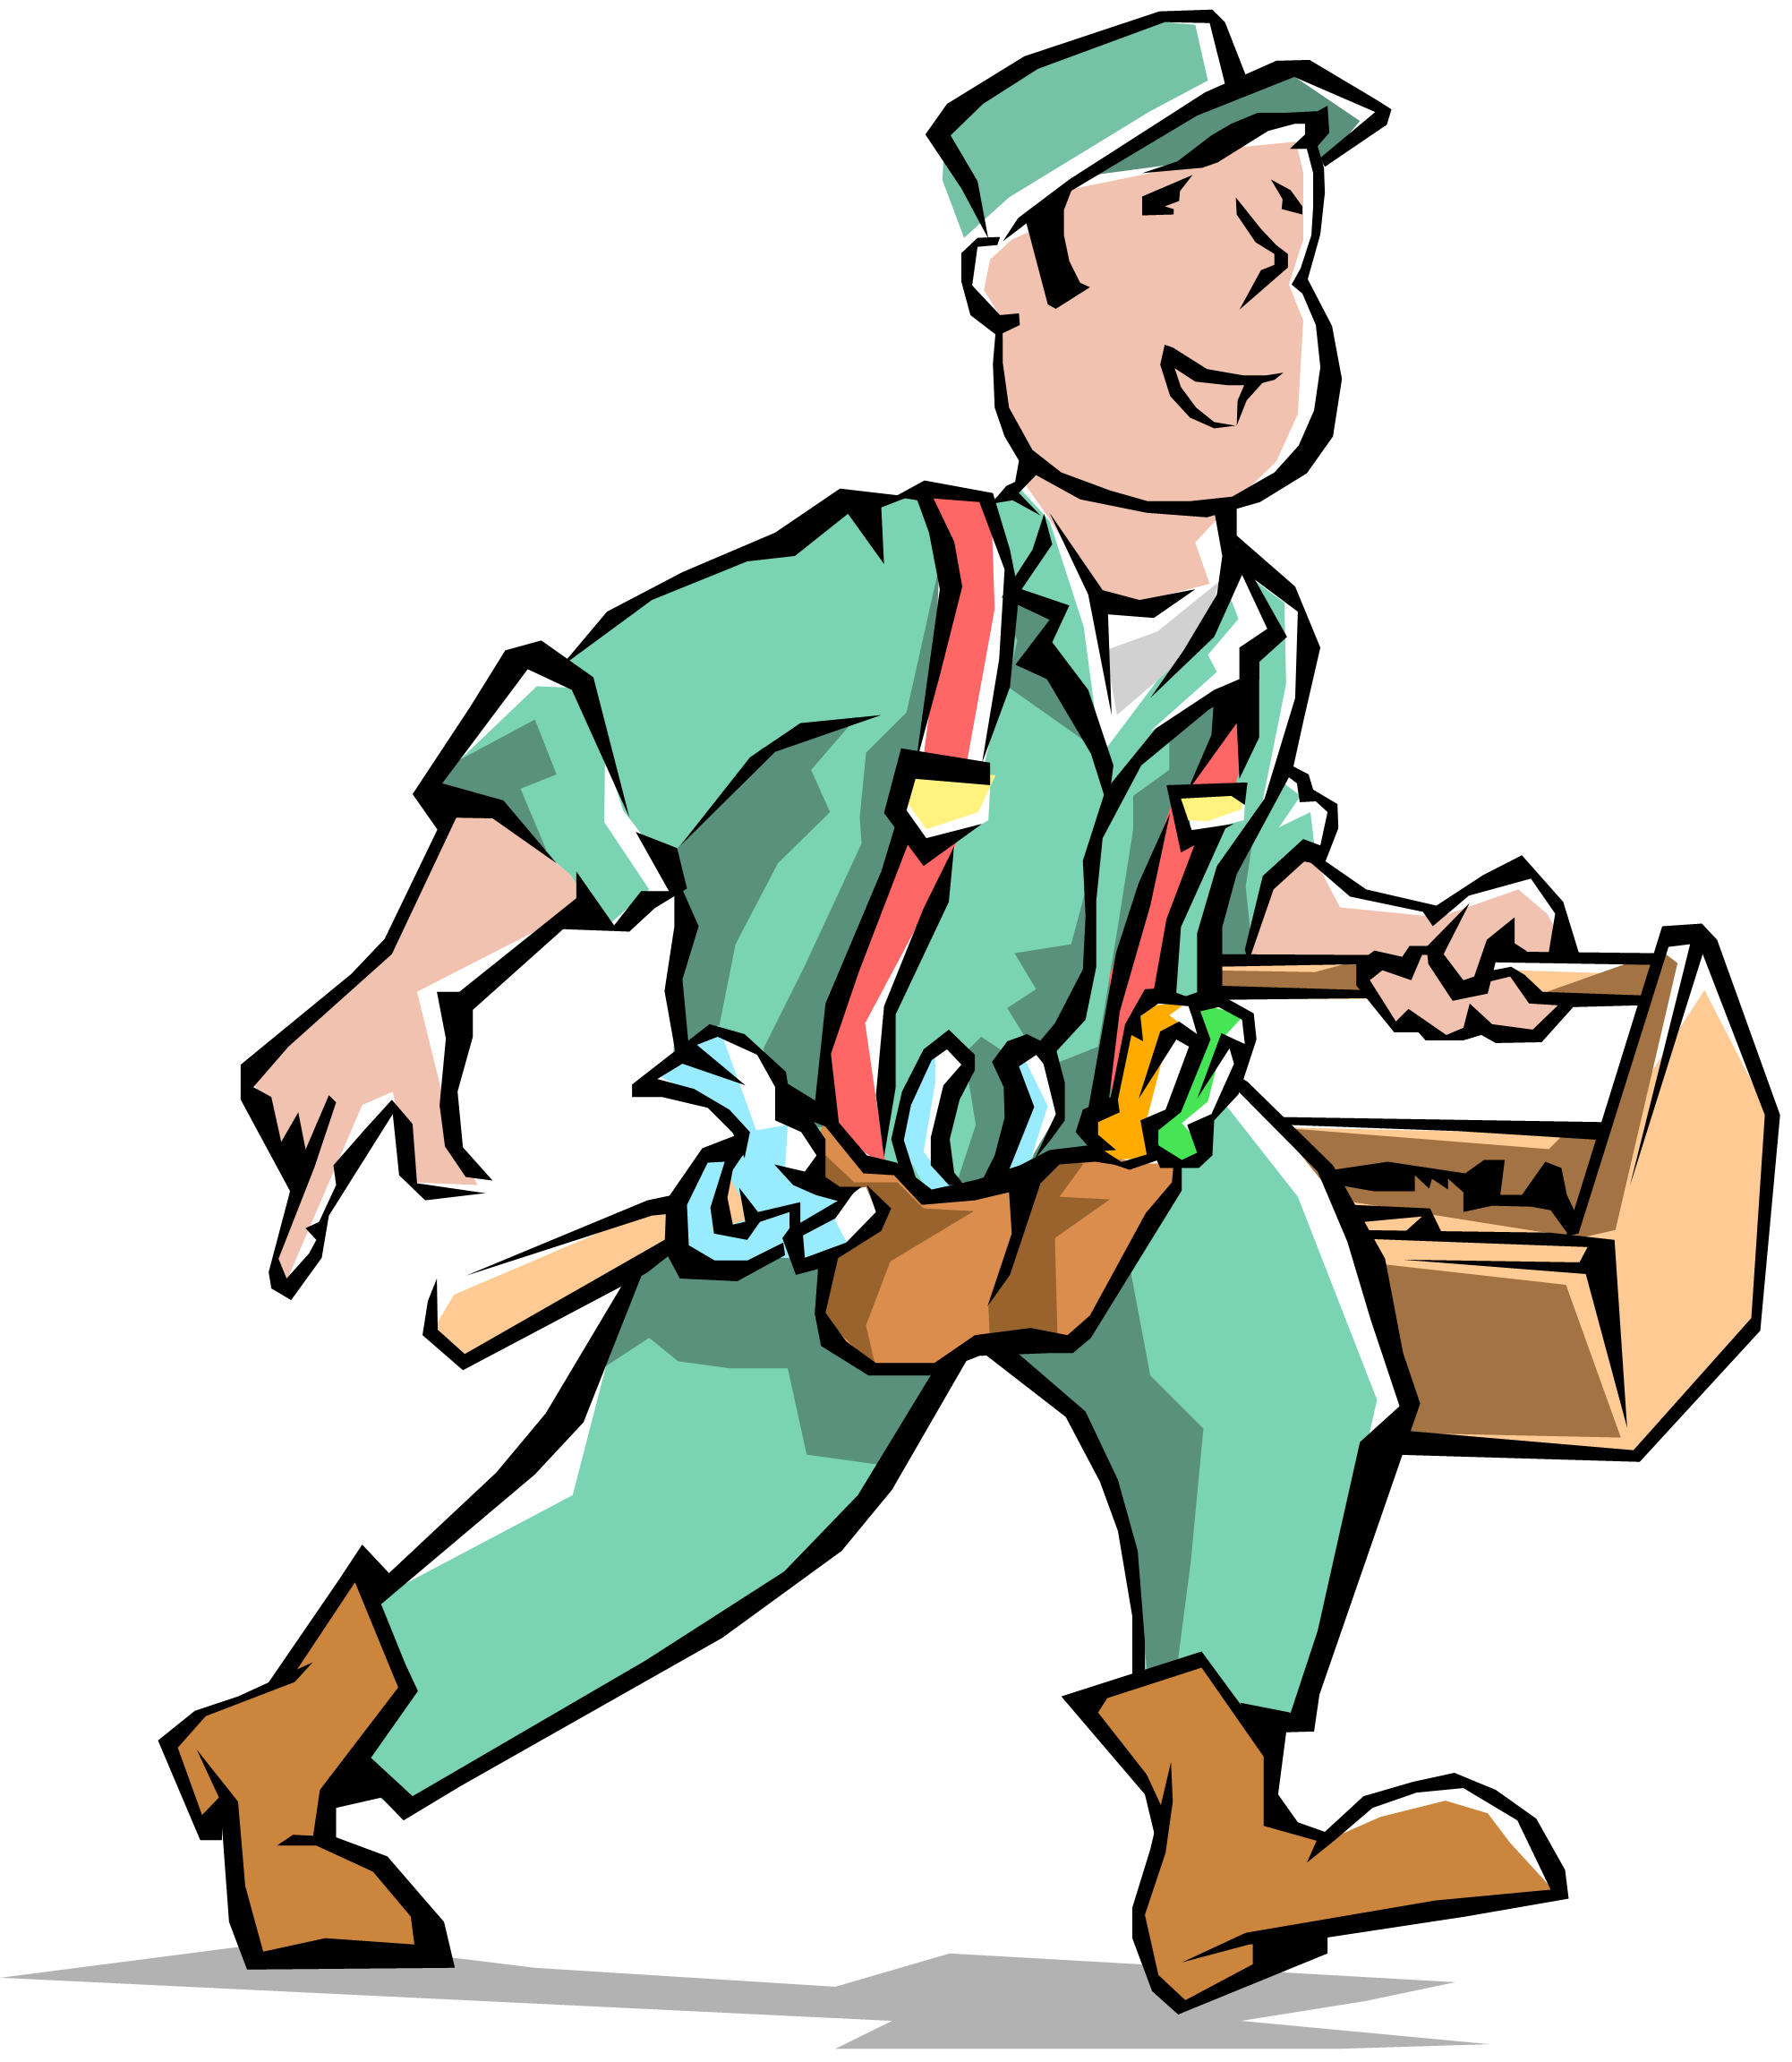 Carpenter drawing work clipart. Free handyman cliparts download